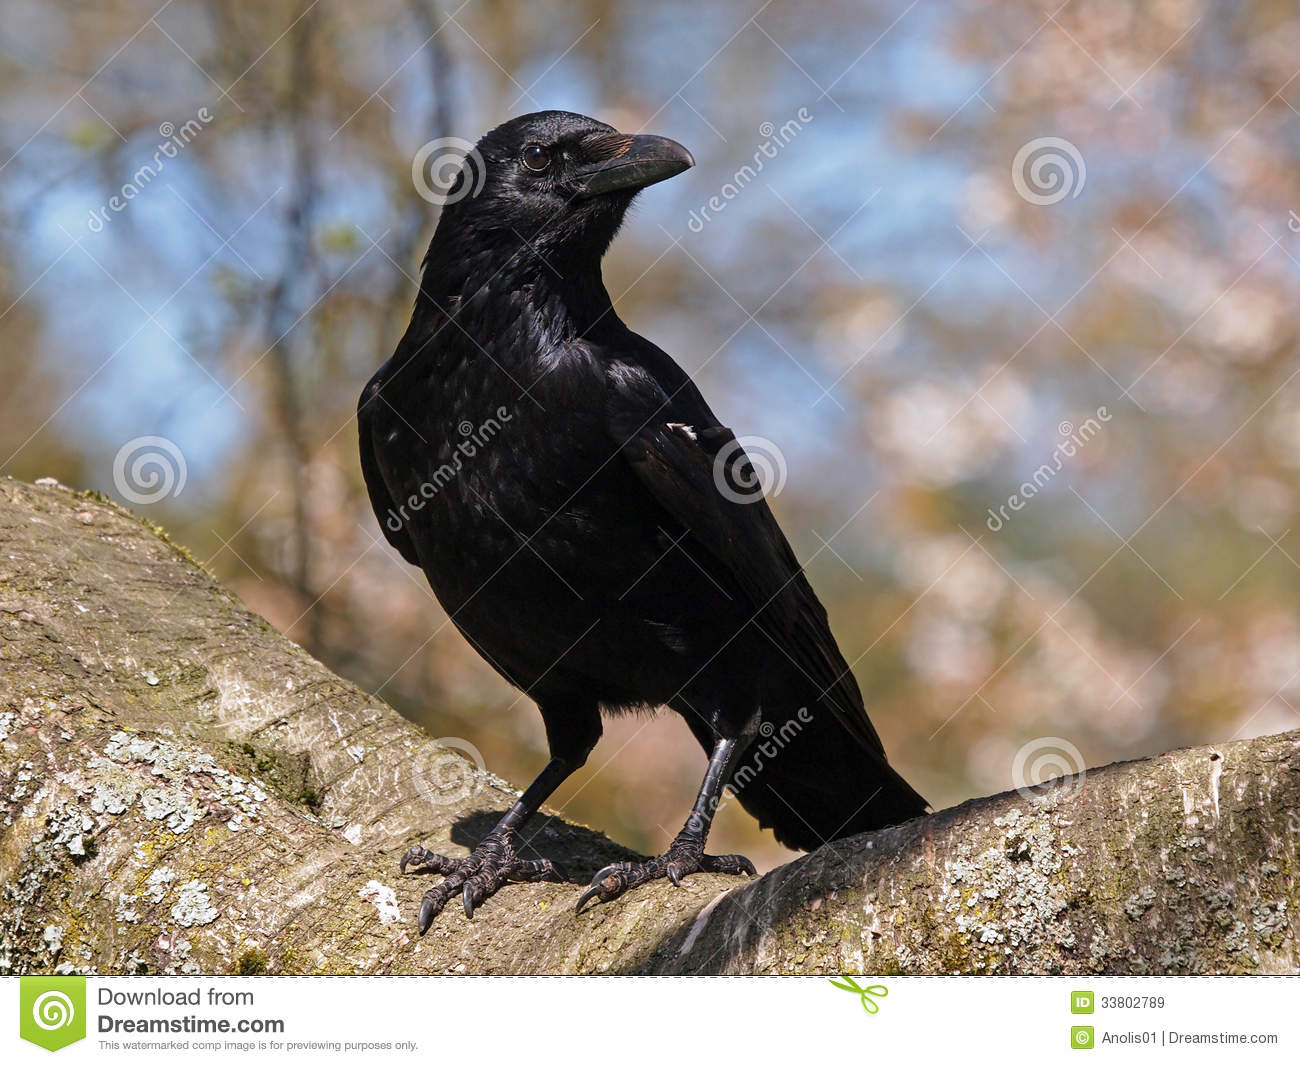 Three black crows sat on a tree